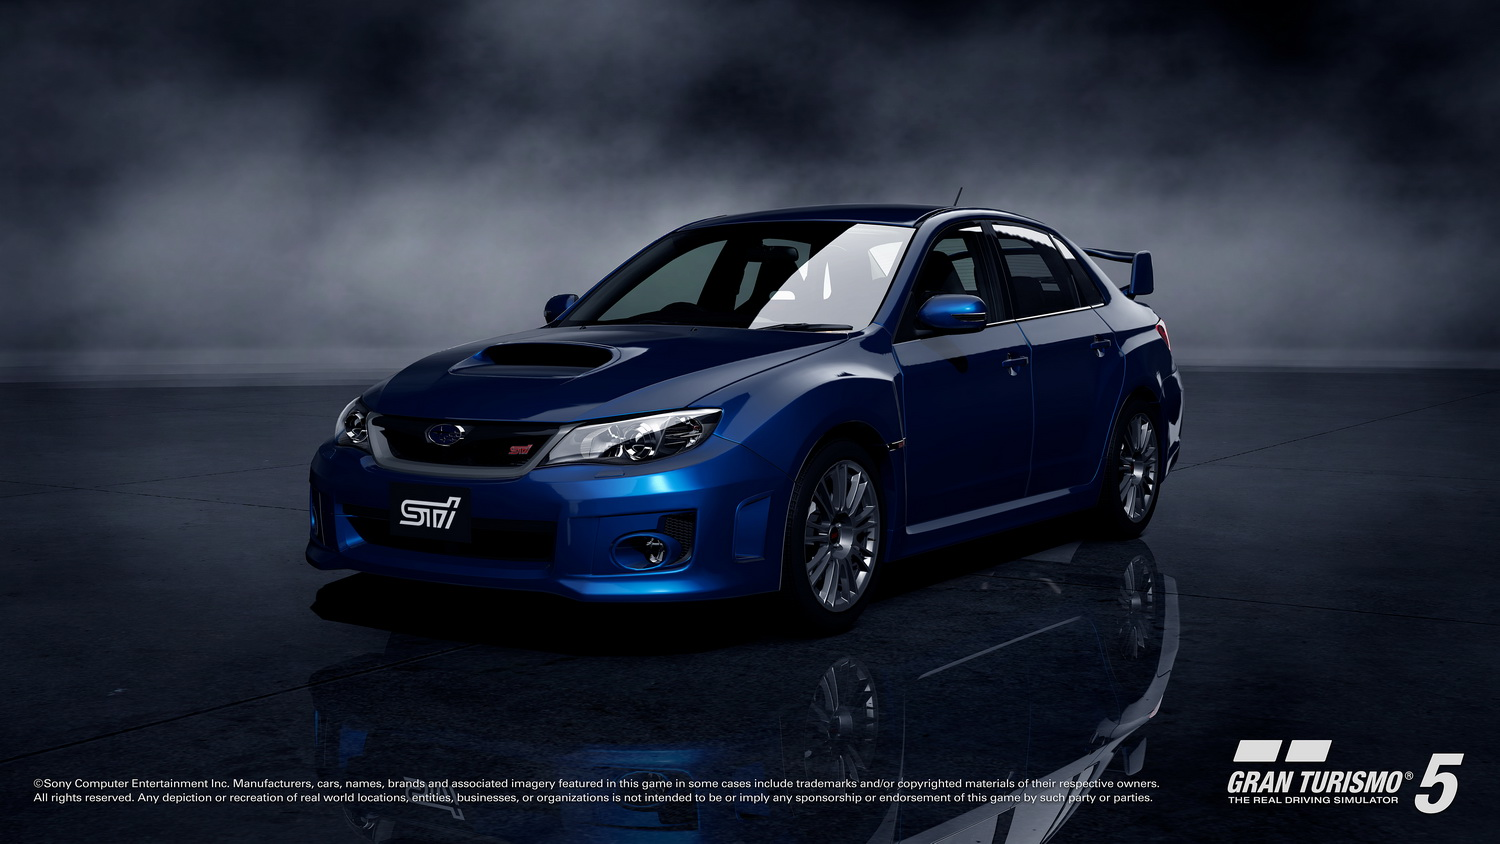 Related image with 2016 Subaru Wrx Sti Blue Full Hd Wallpaper 1500x844